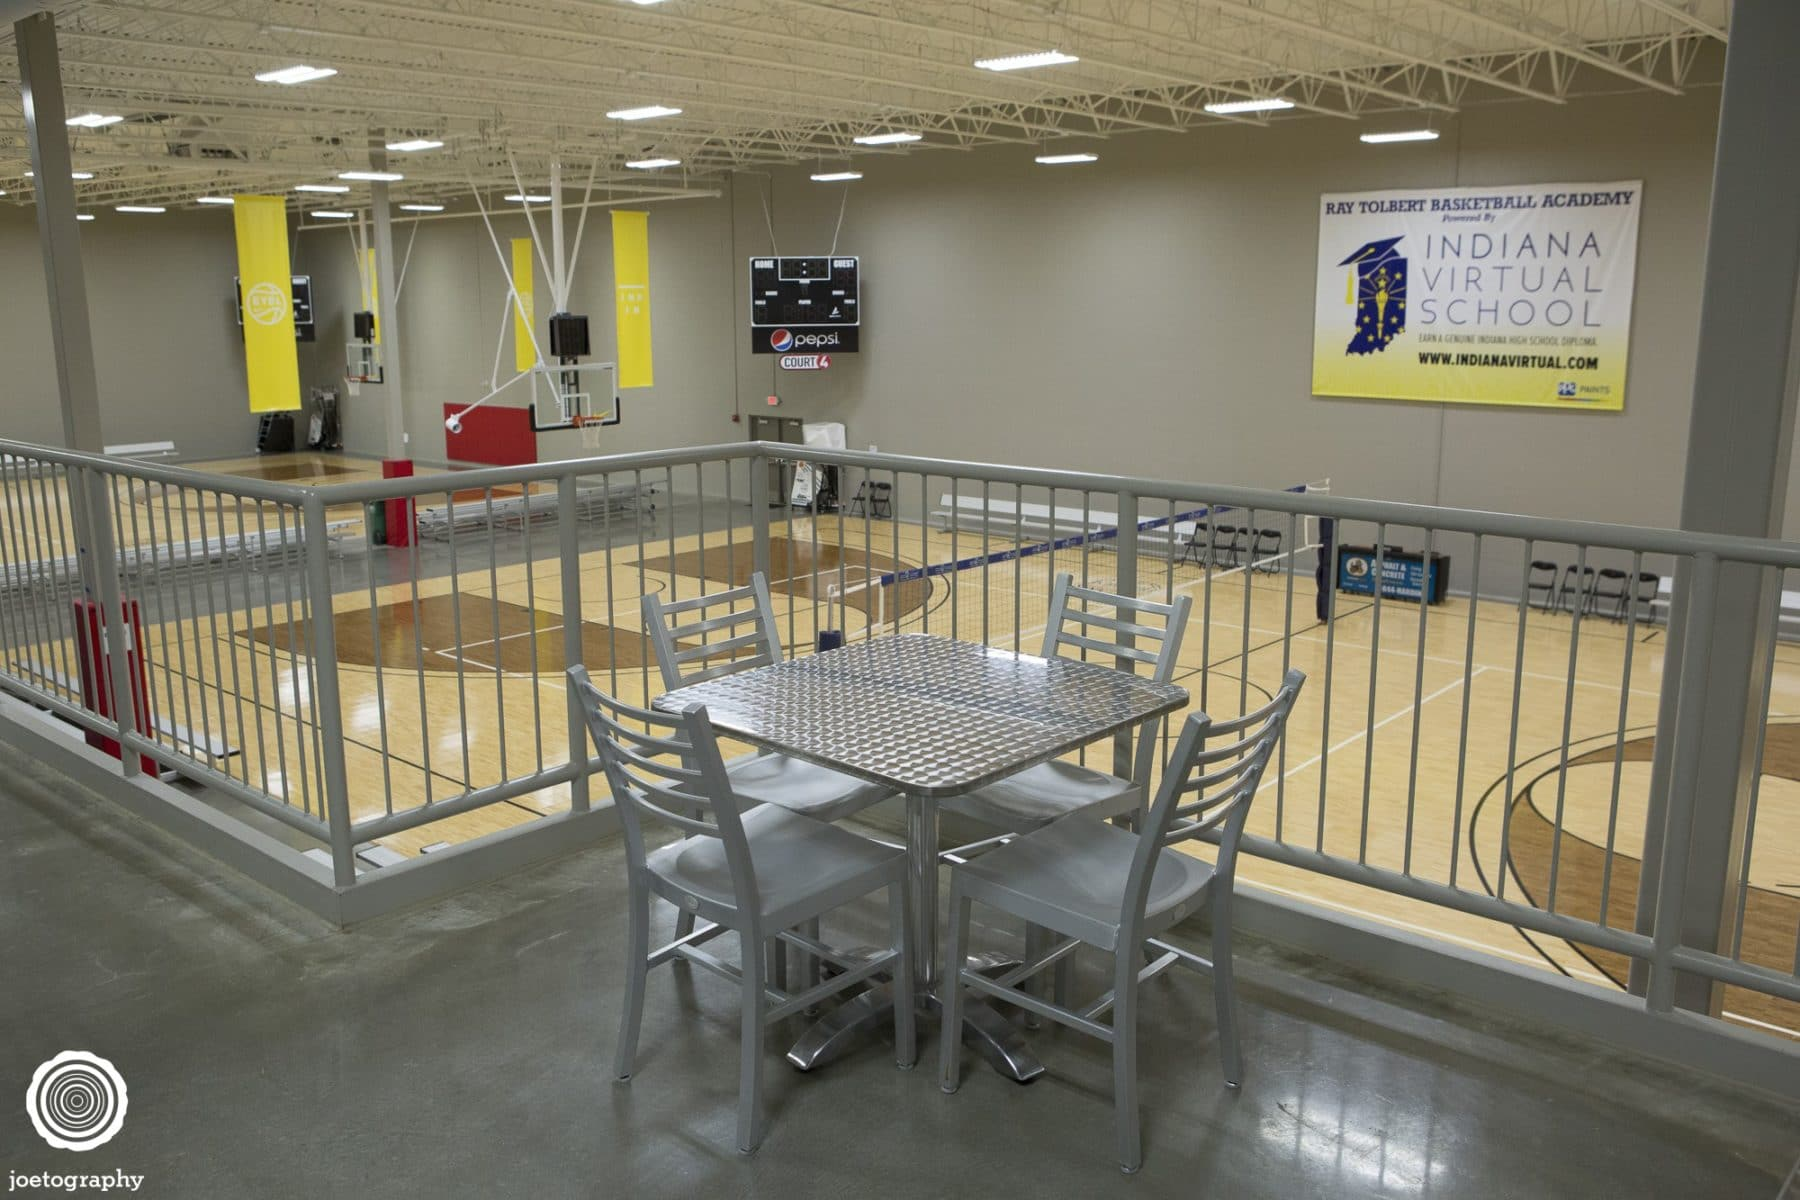 lauth-jonathan-byrd-fieldhouse-architecture-photography-westfield-indiana-22